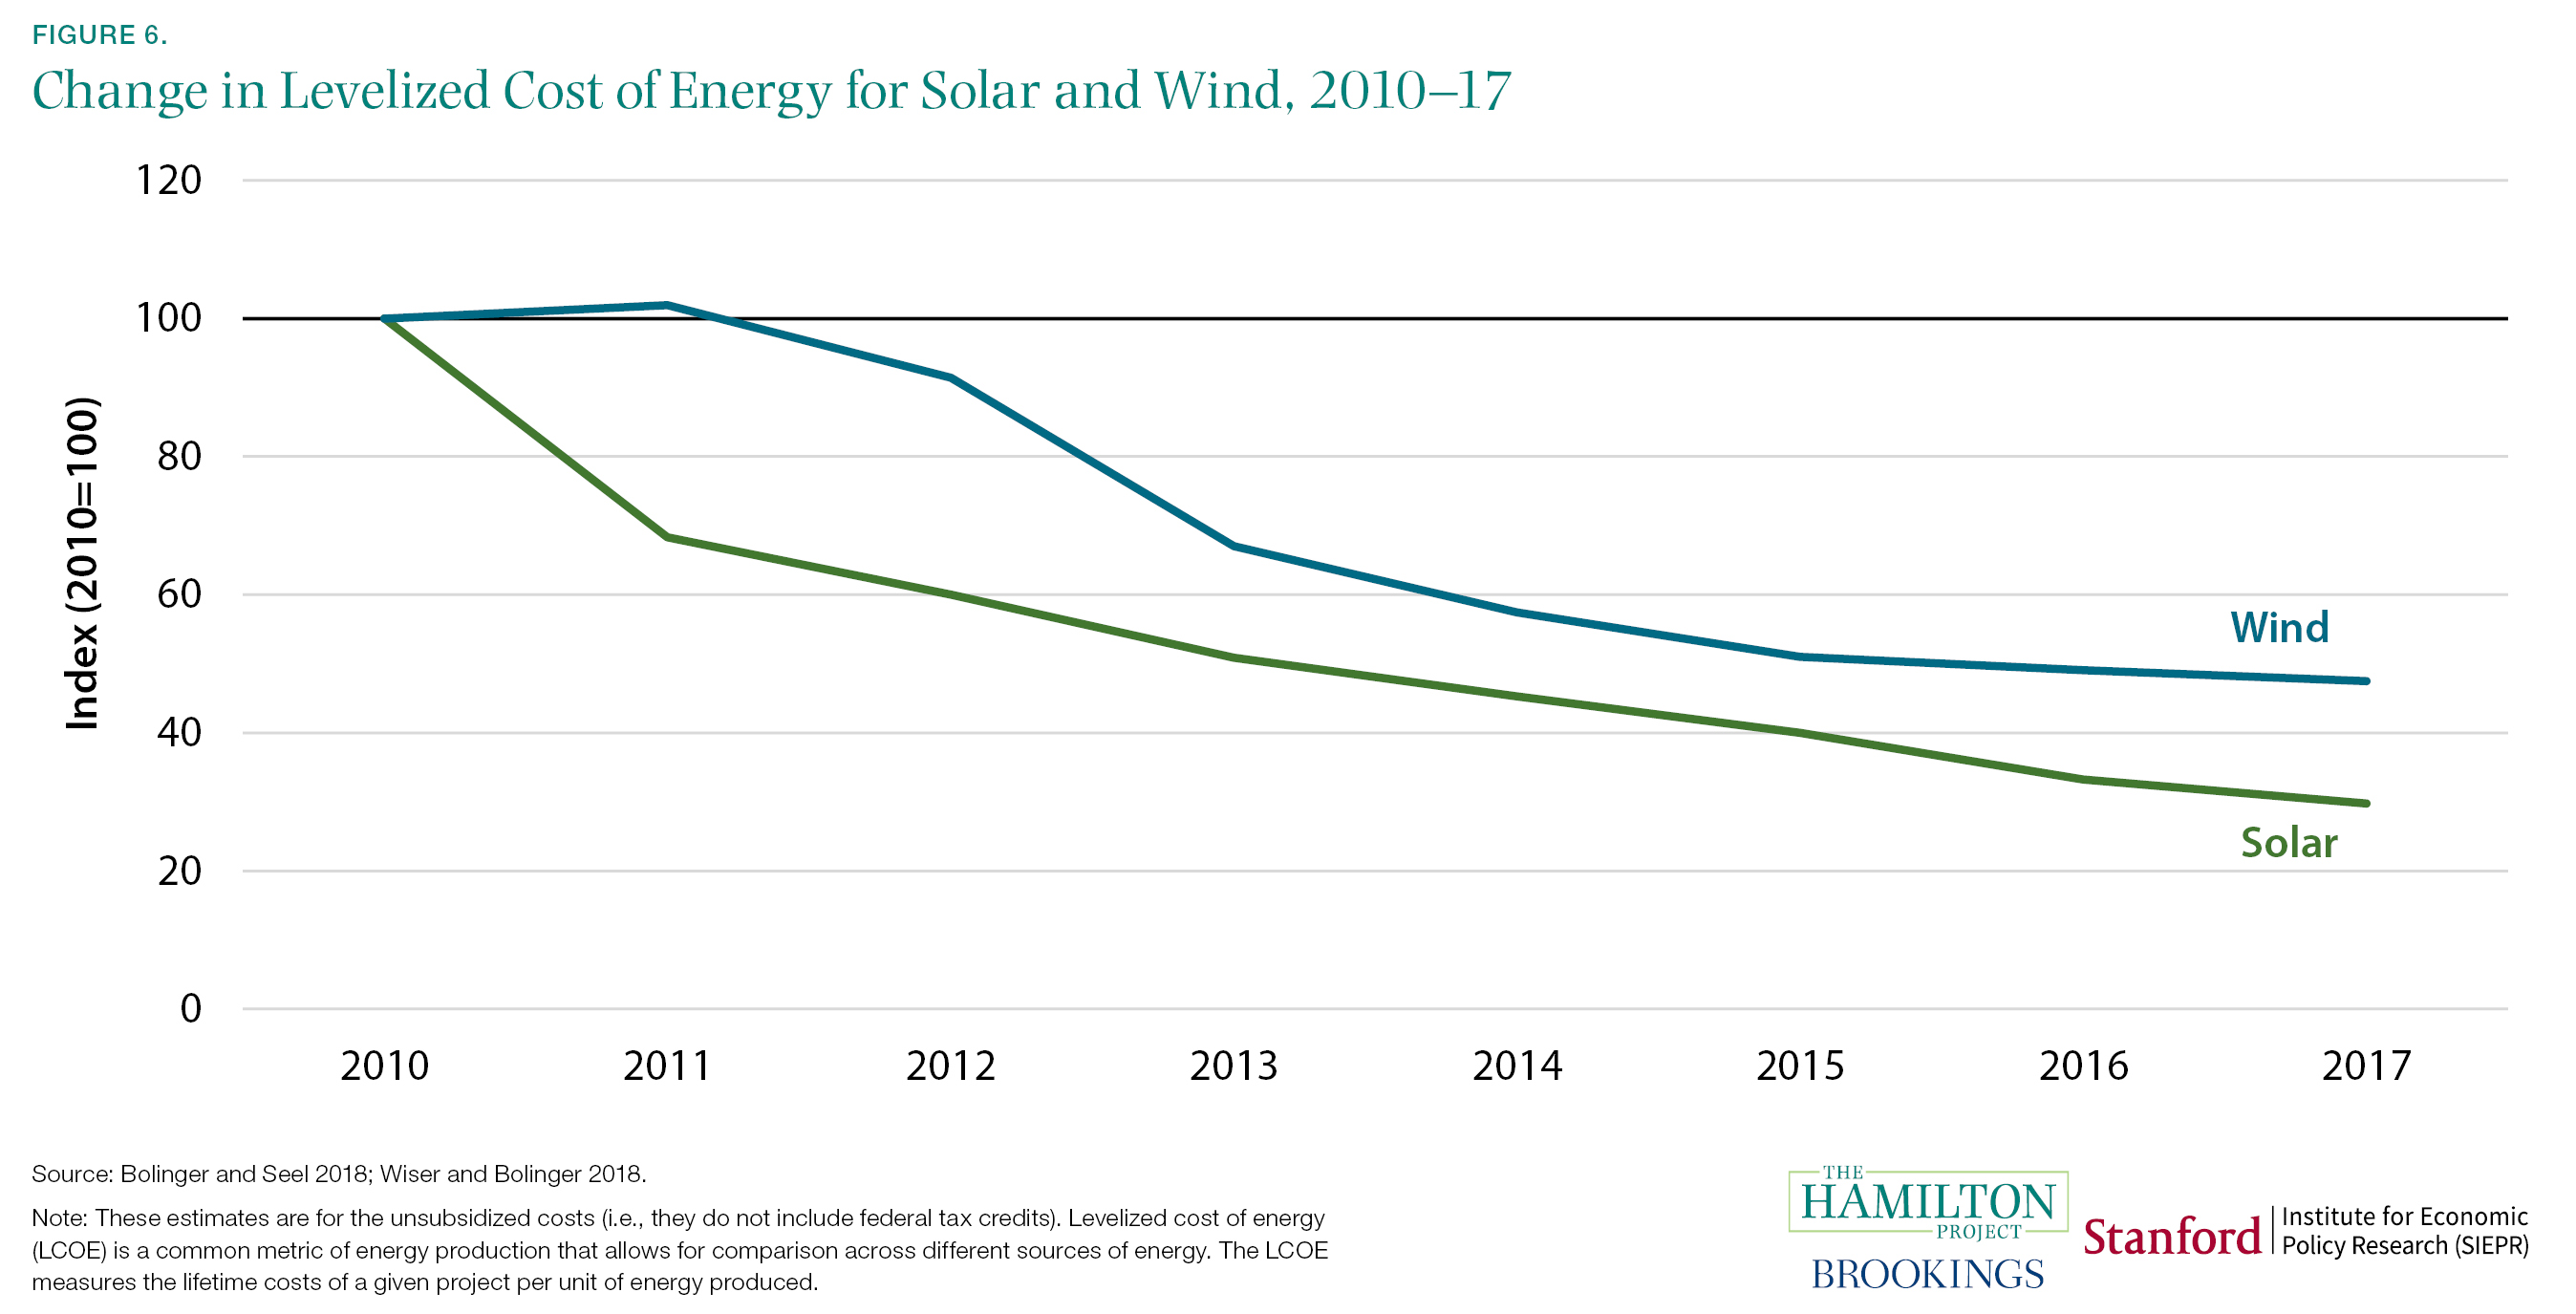 Change in Levelized Cost of Energy for Solar and Wind, 2010-17